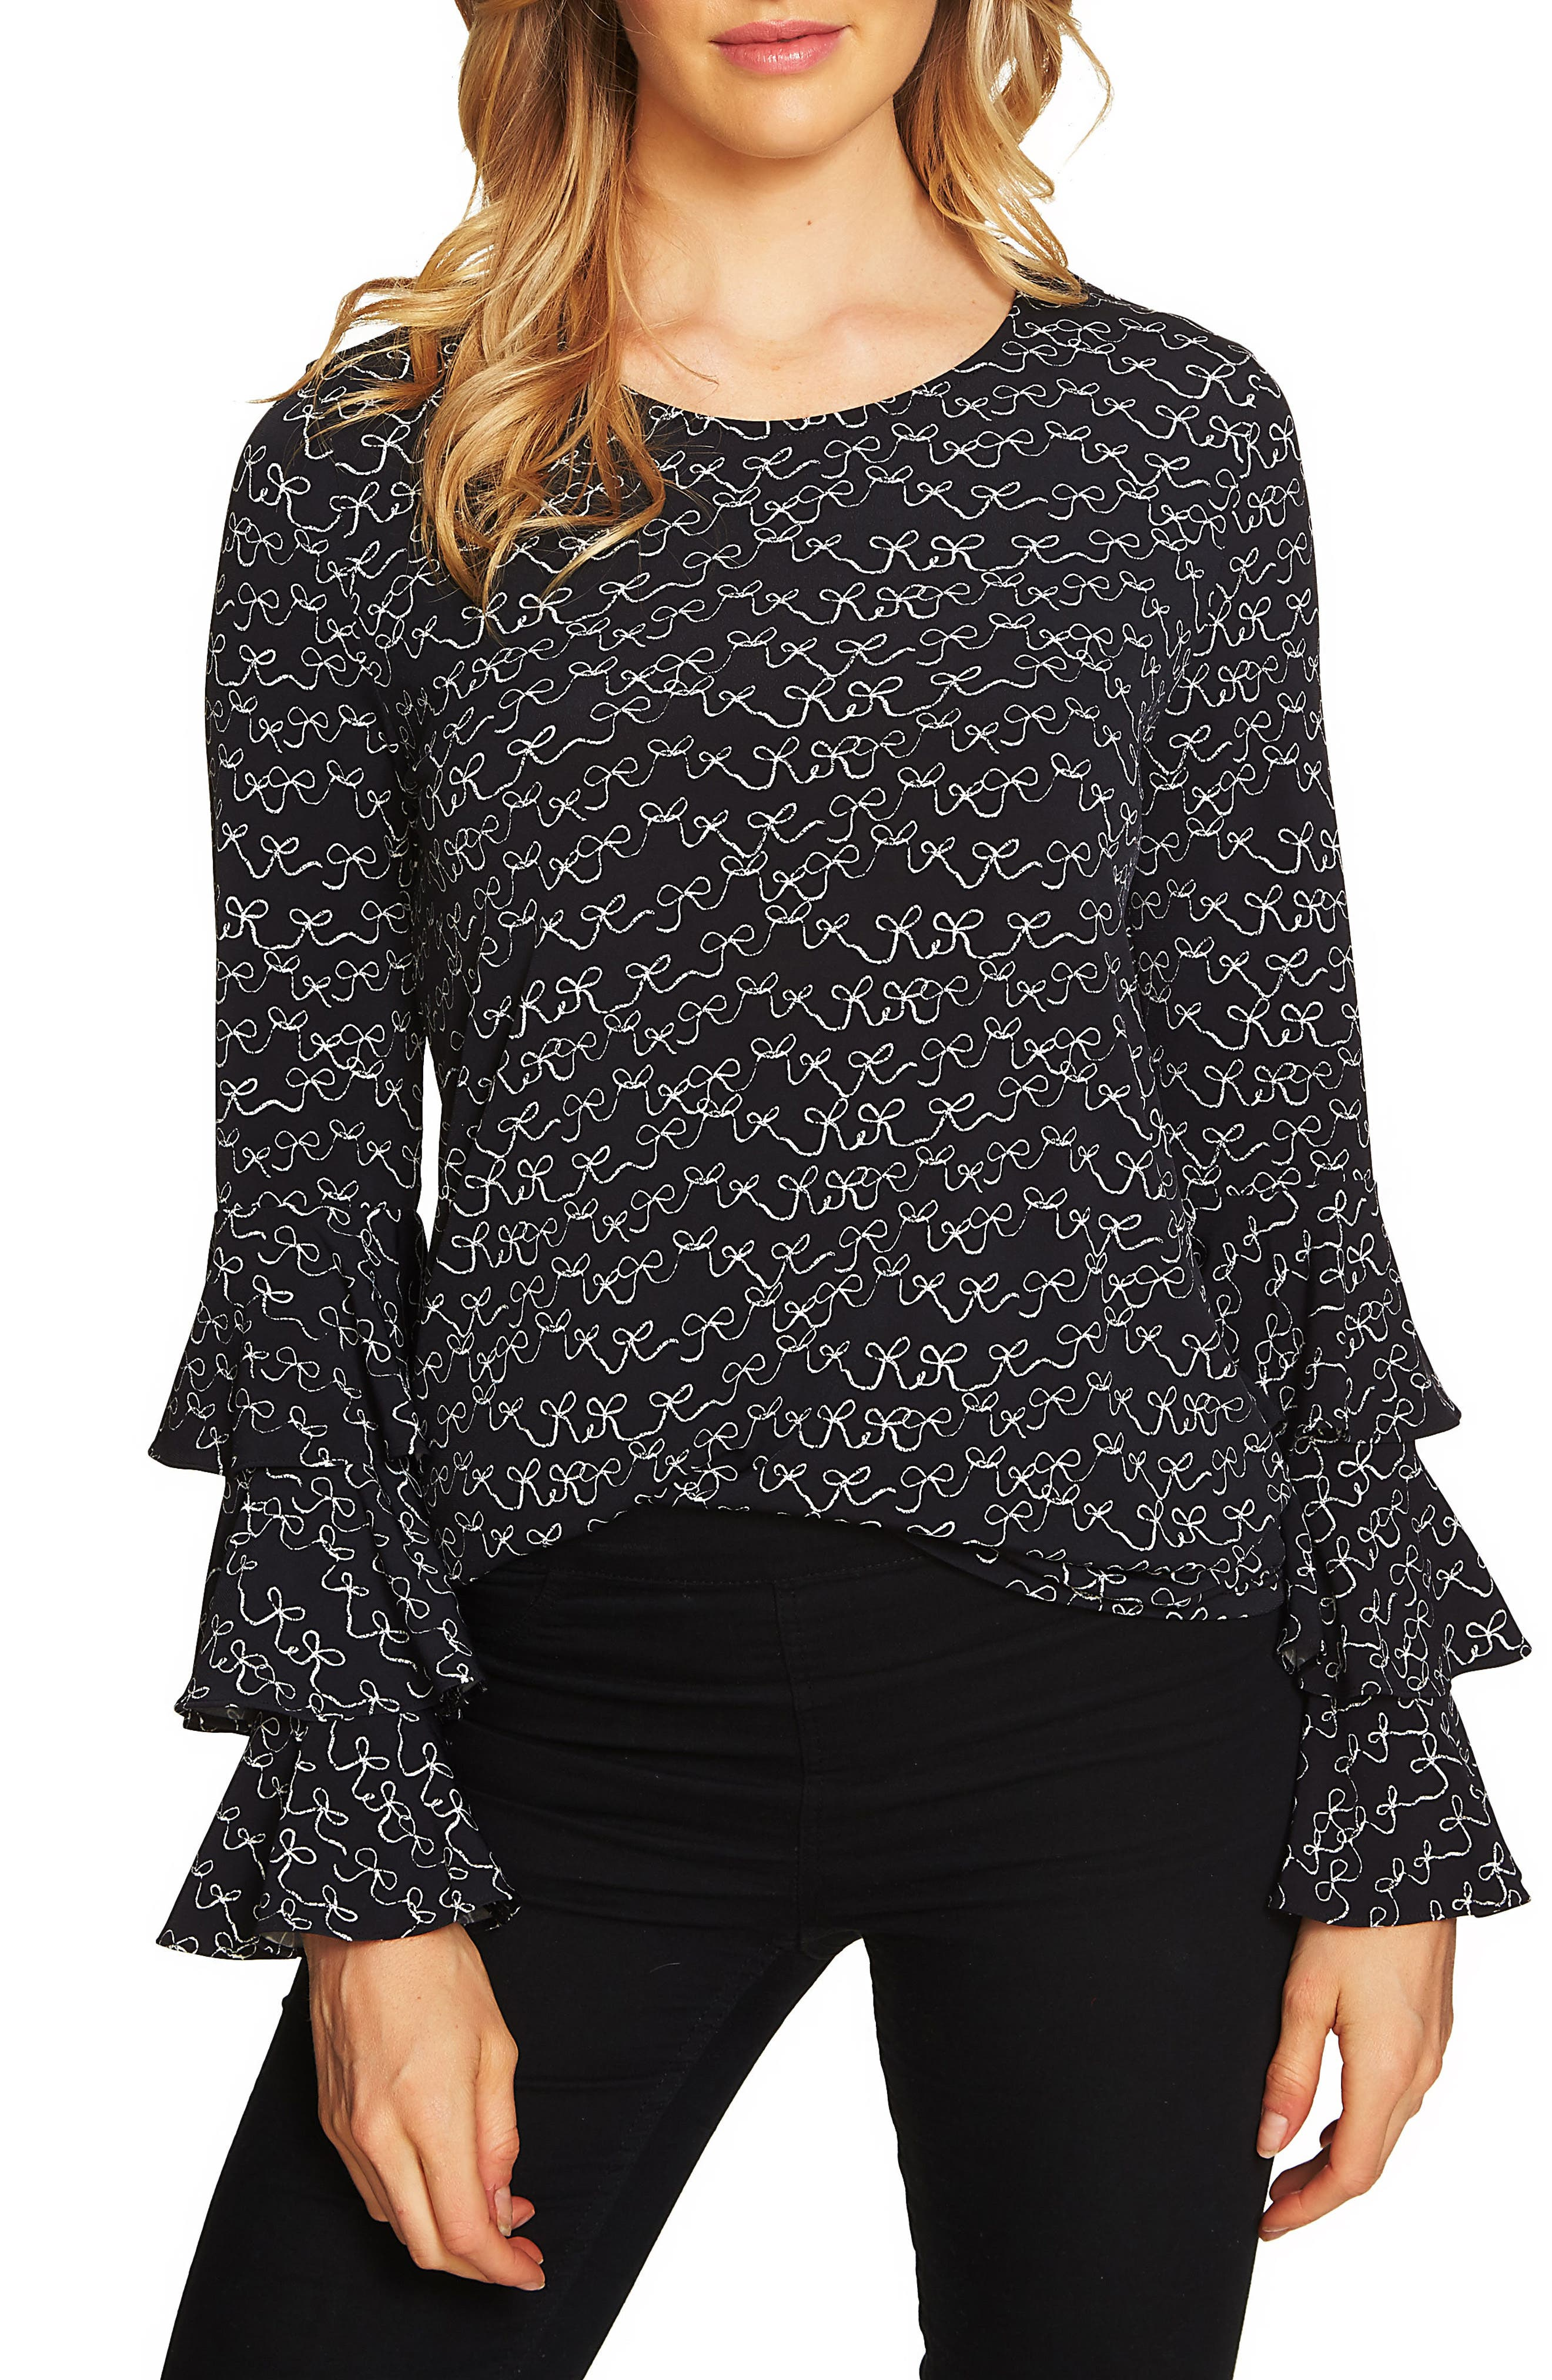 Danity Tiered Ruffle Bell Sleeve Top,                         Main,                         color, 001